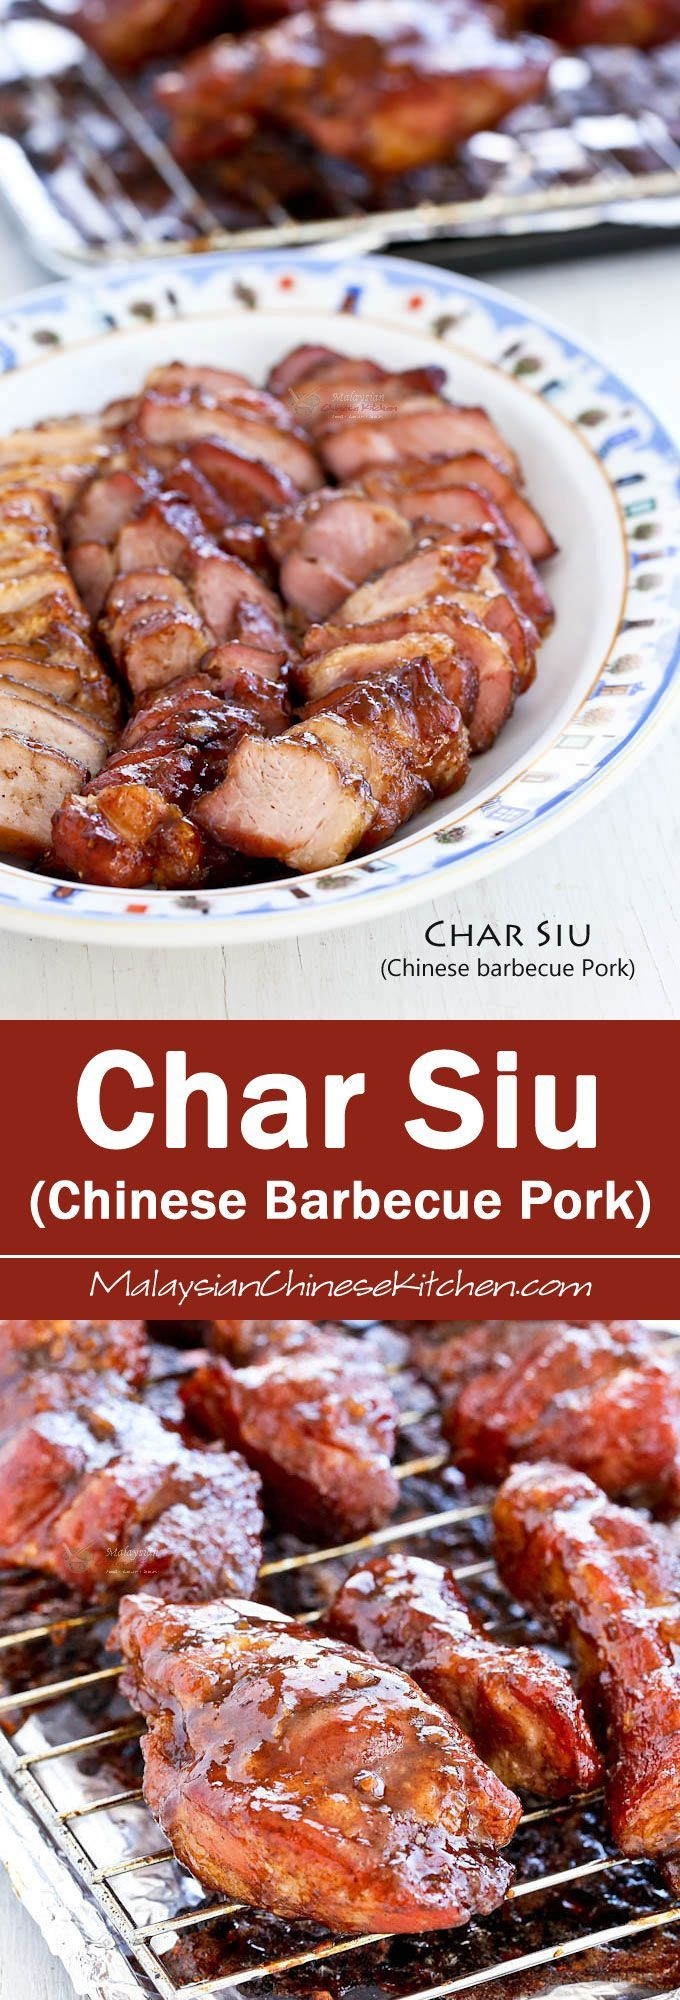 Easy to prepare oven roasted Char Siu (Chinese Barbecue Pork). Deliciously sticky, sweet, and savory. Perfect with steamed rice or noodles.   http://MalaysianChineseKitchen.com